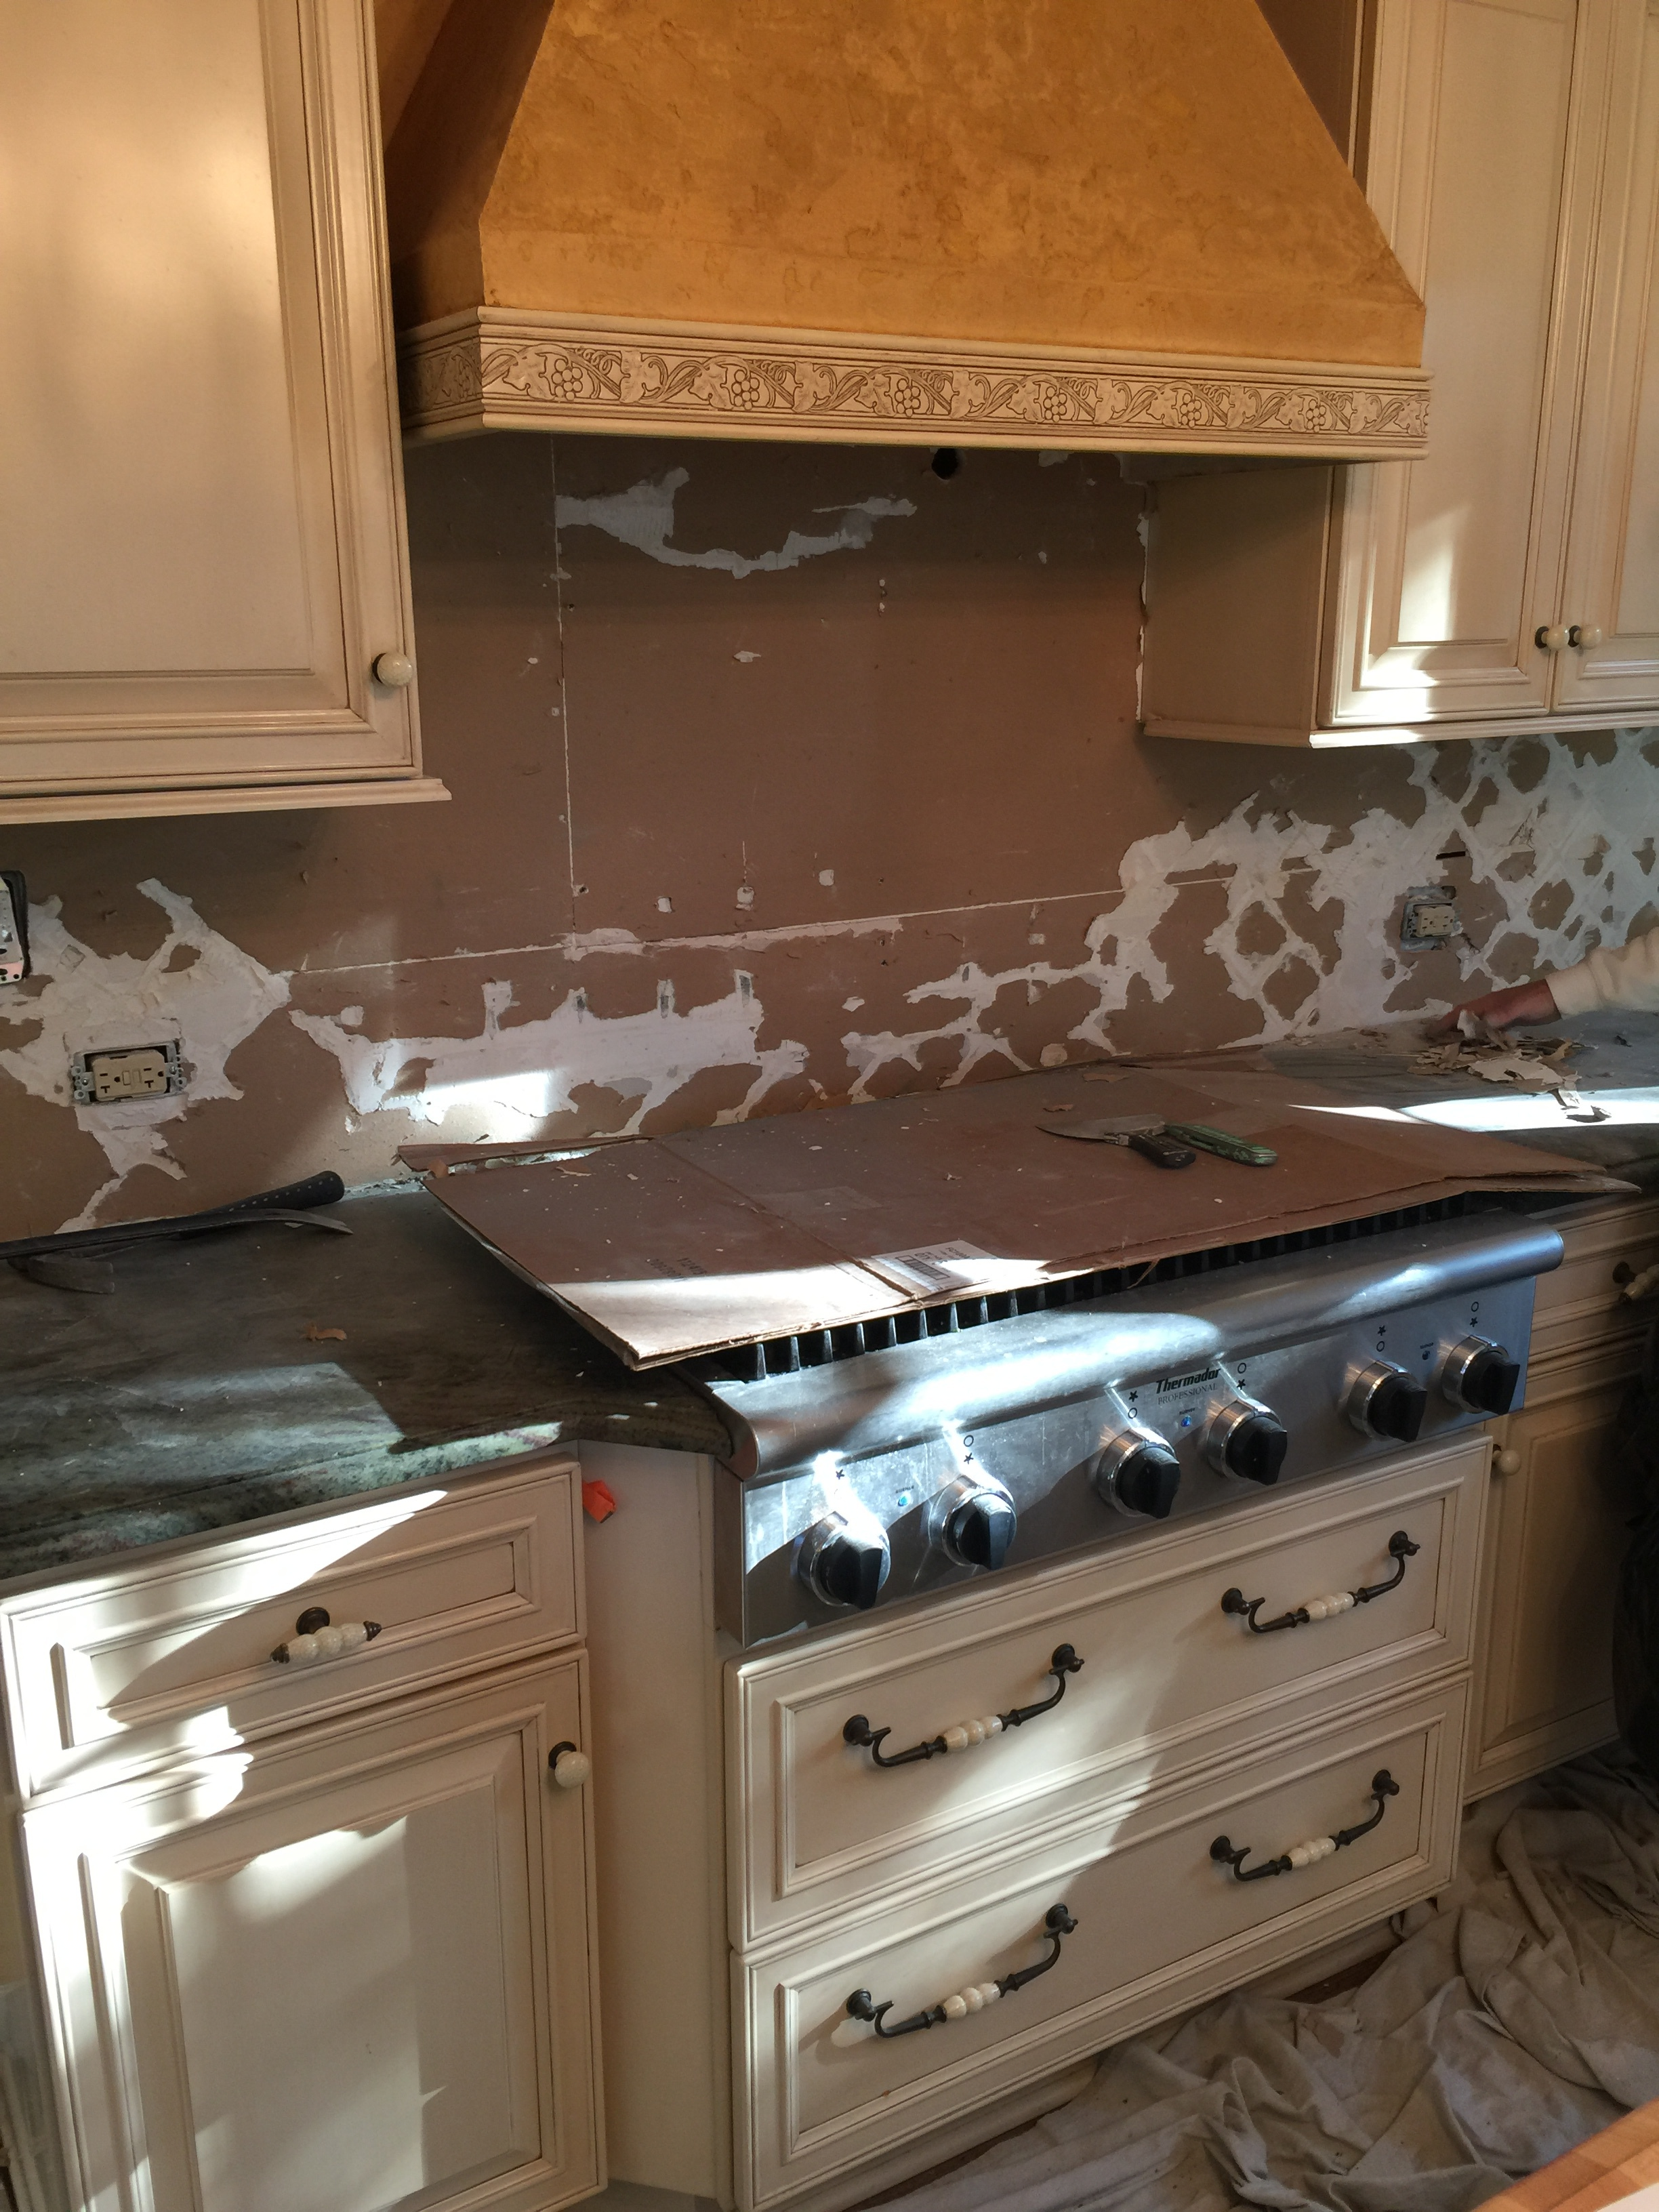 We removed the pastoral backsplash, cabinet hardware, and countertops. The china cabinet found a new home, and the walls were skim-coated smooth for paint. Cream colored cabinets were targeted for new paint. What to do about the heavily textured mustard-colored range hood?